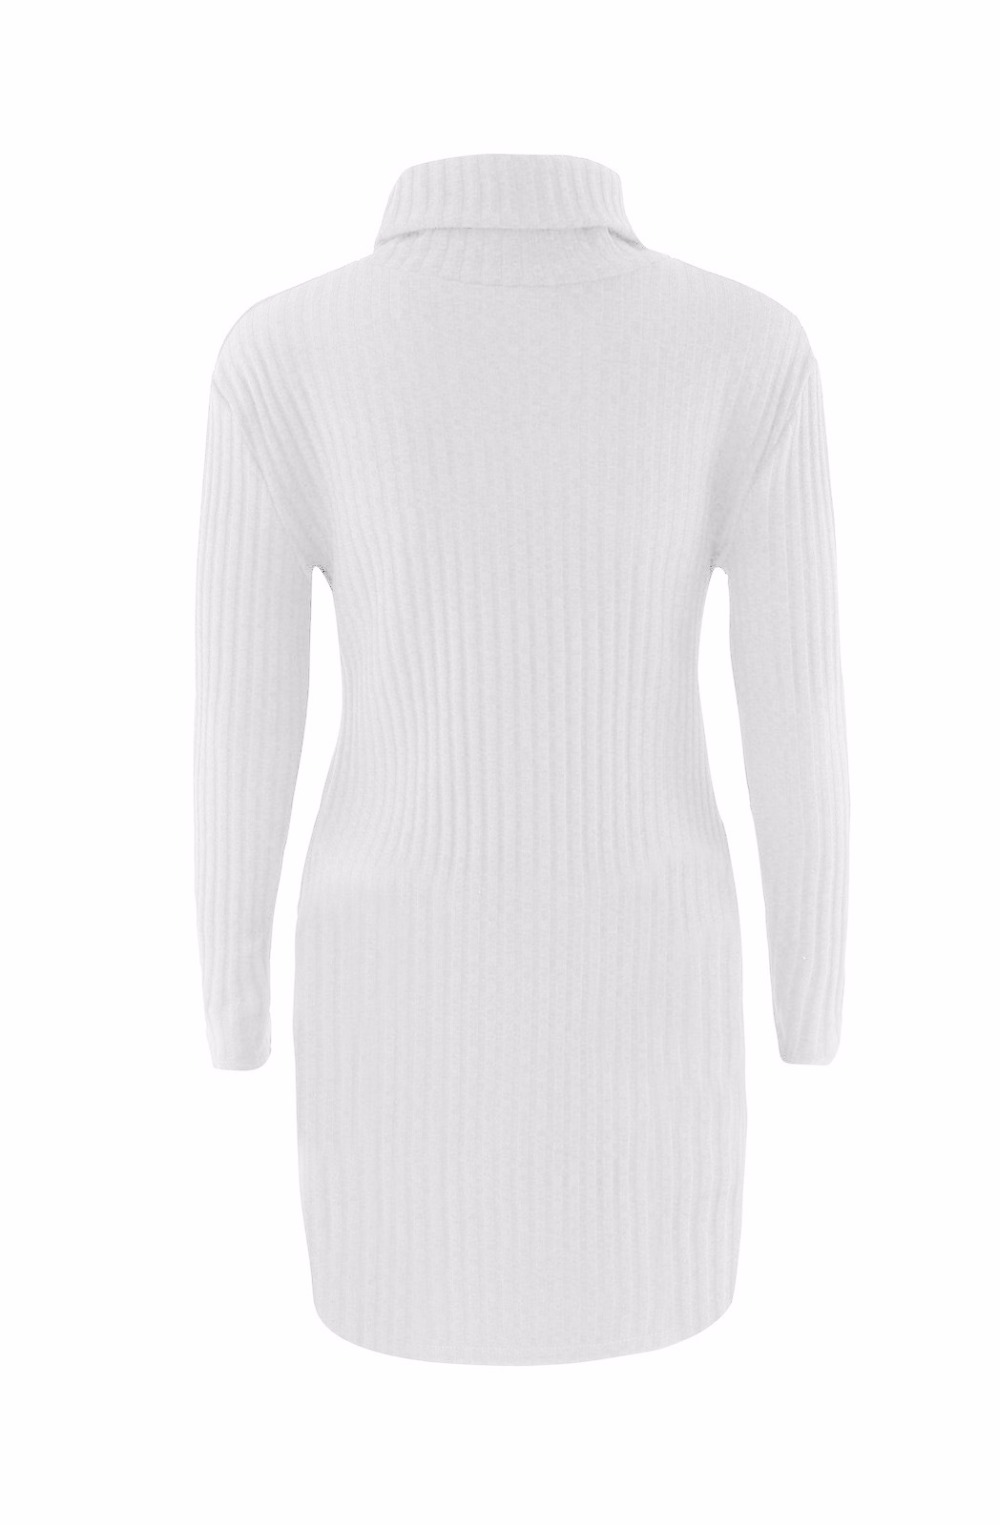 Turtleneck Long knitted pullover sweater, Women's Jumper, Casual Sweater 42